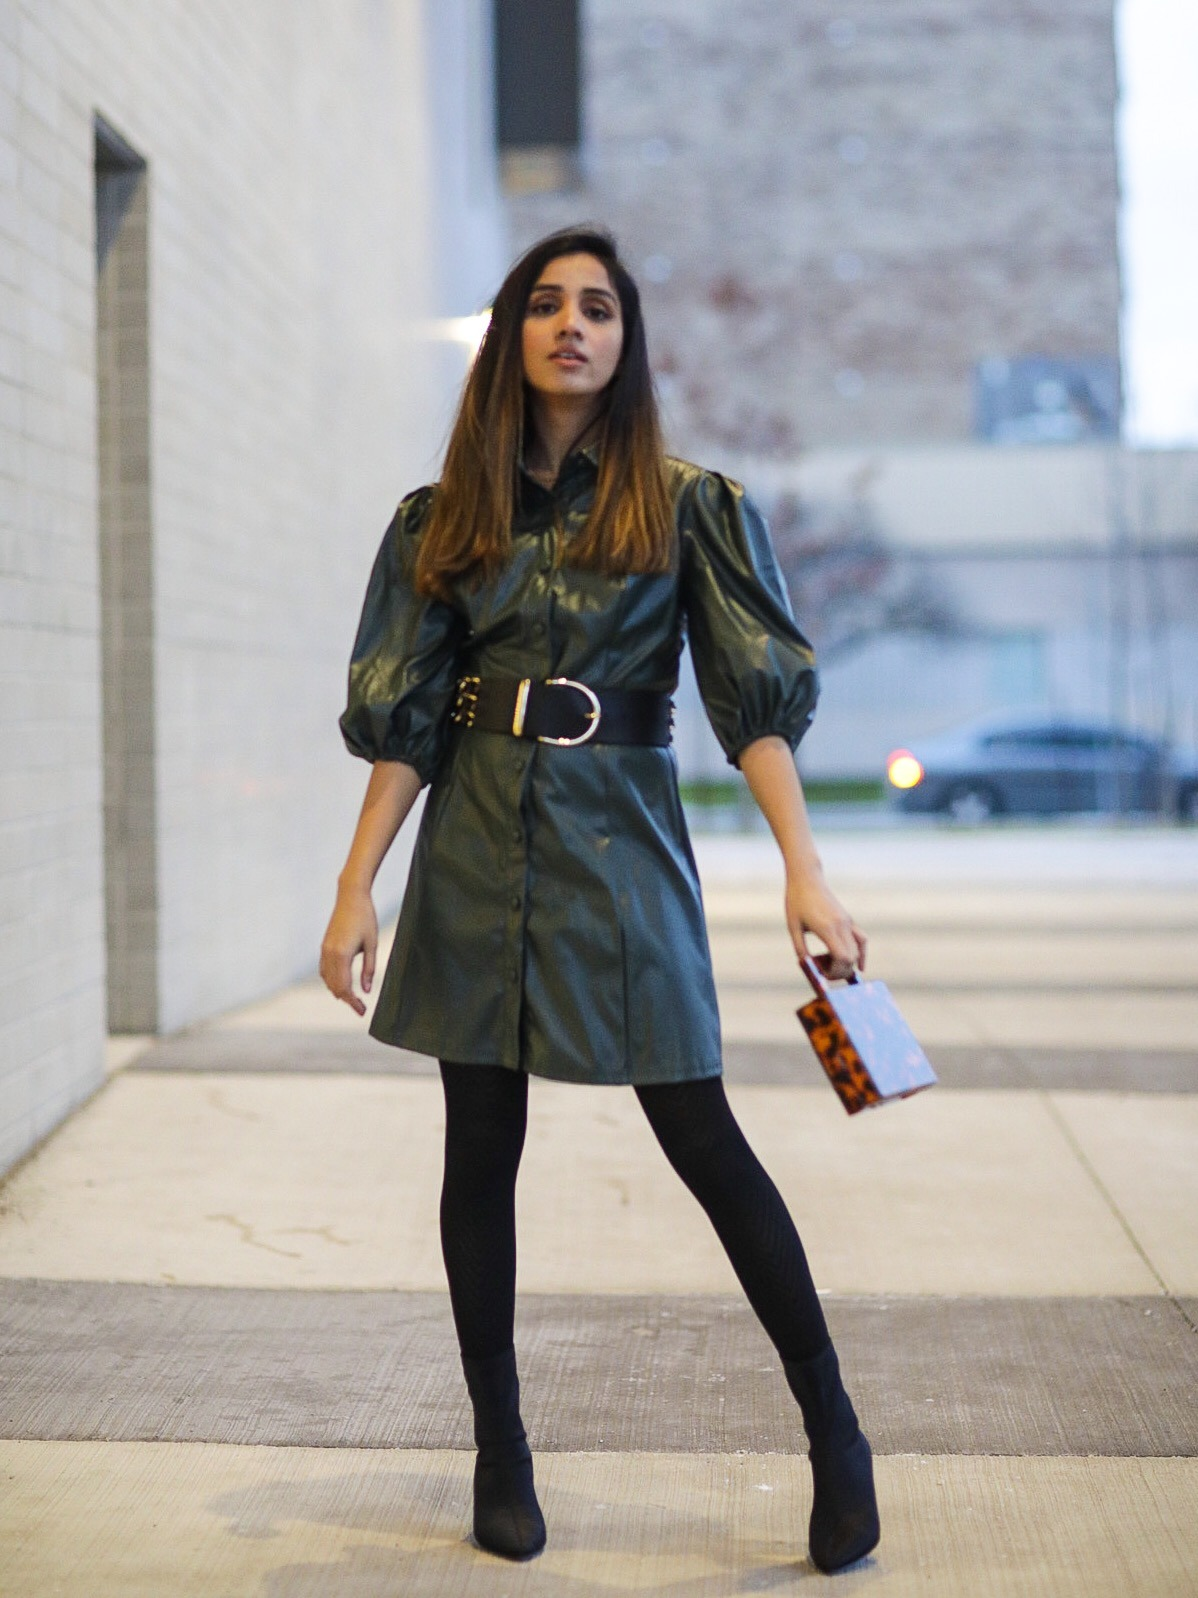 Top ShopBop Finds for Cold Winter Faiza Inam Winter Style Fashion 2020 4